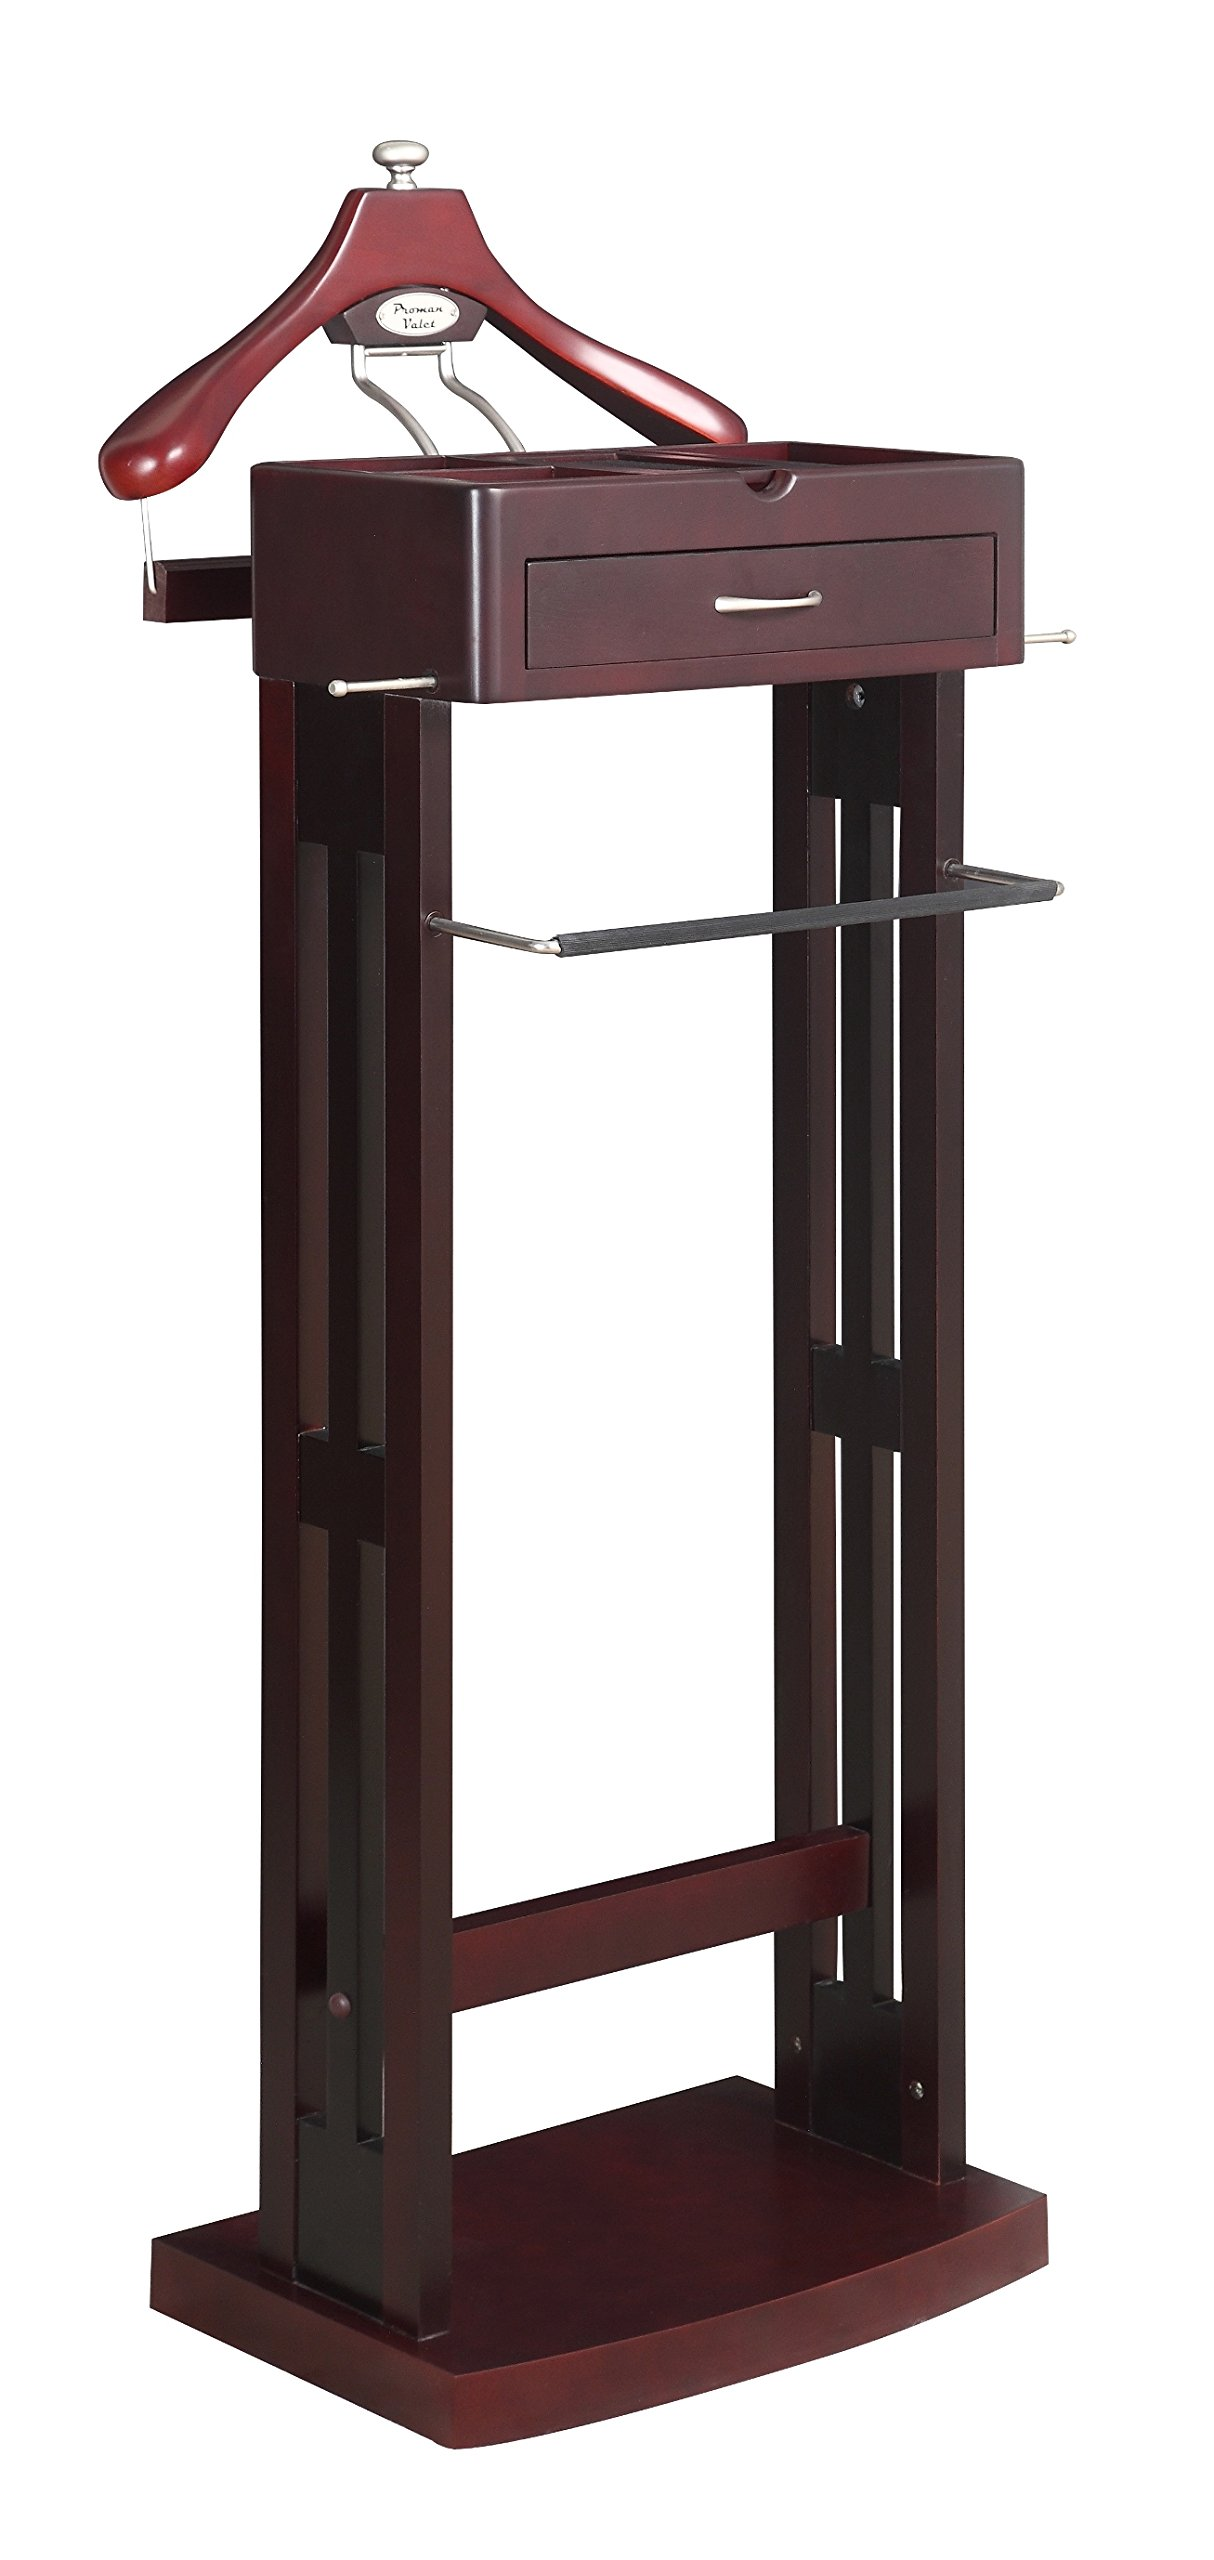 Proman Products VL16245 Wardrobe Valet